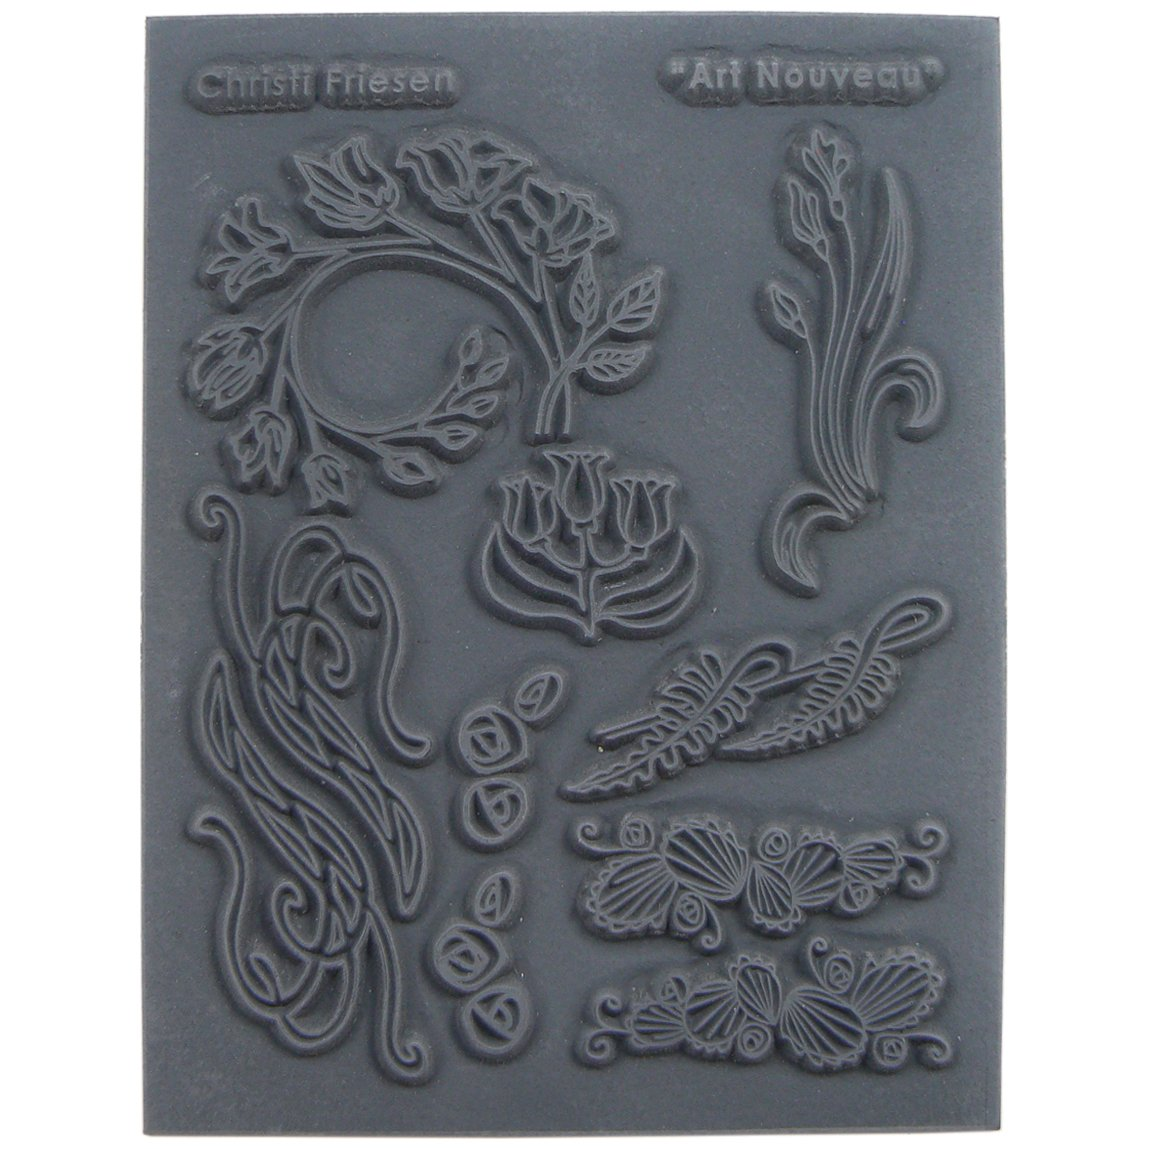 Great Create 5.5-Inch by 4.5-Inch Christi Friesen Texture Stamp 4.25x5.5, Art Nouveau CF6-651